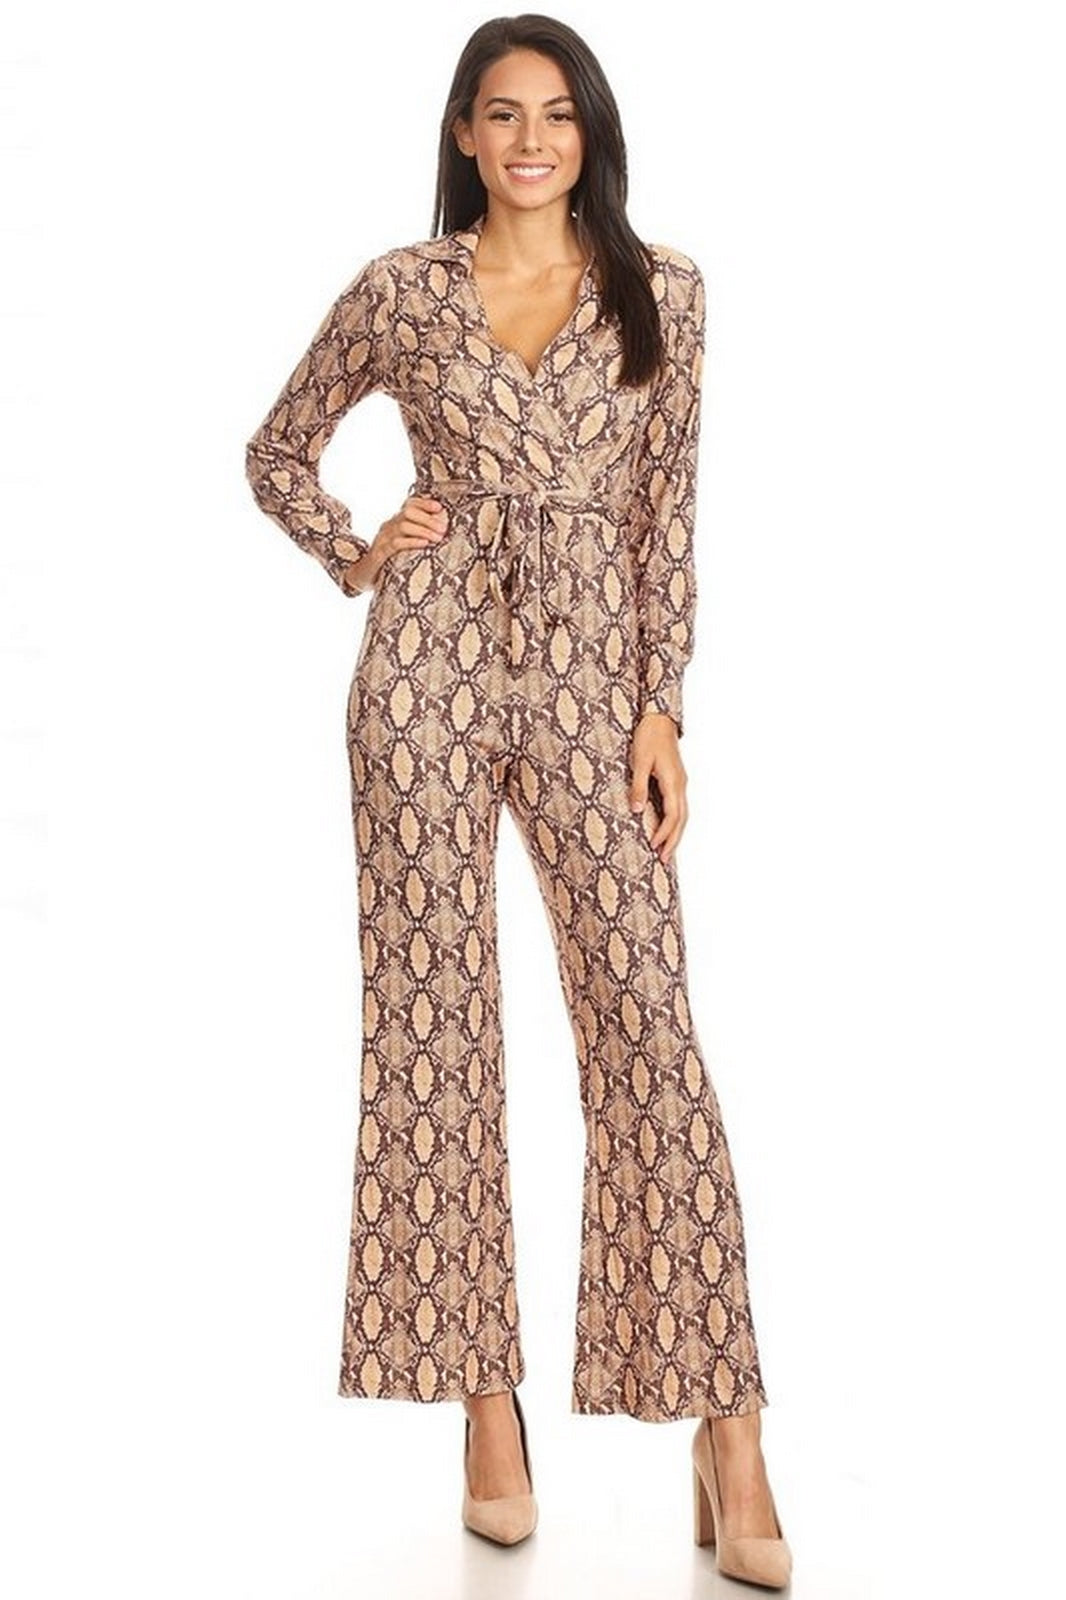 Trac Jumpsuit  Modelo CP51193